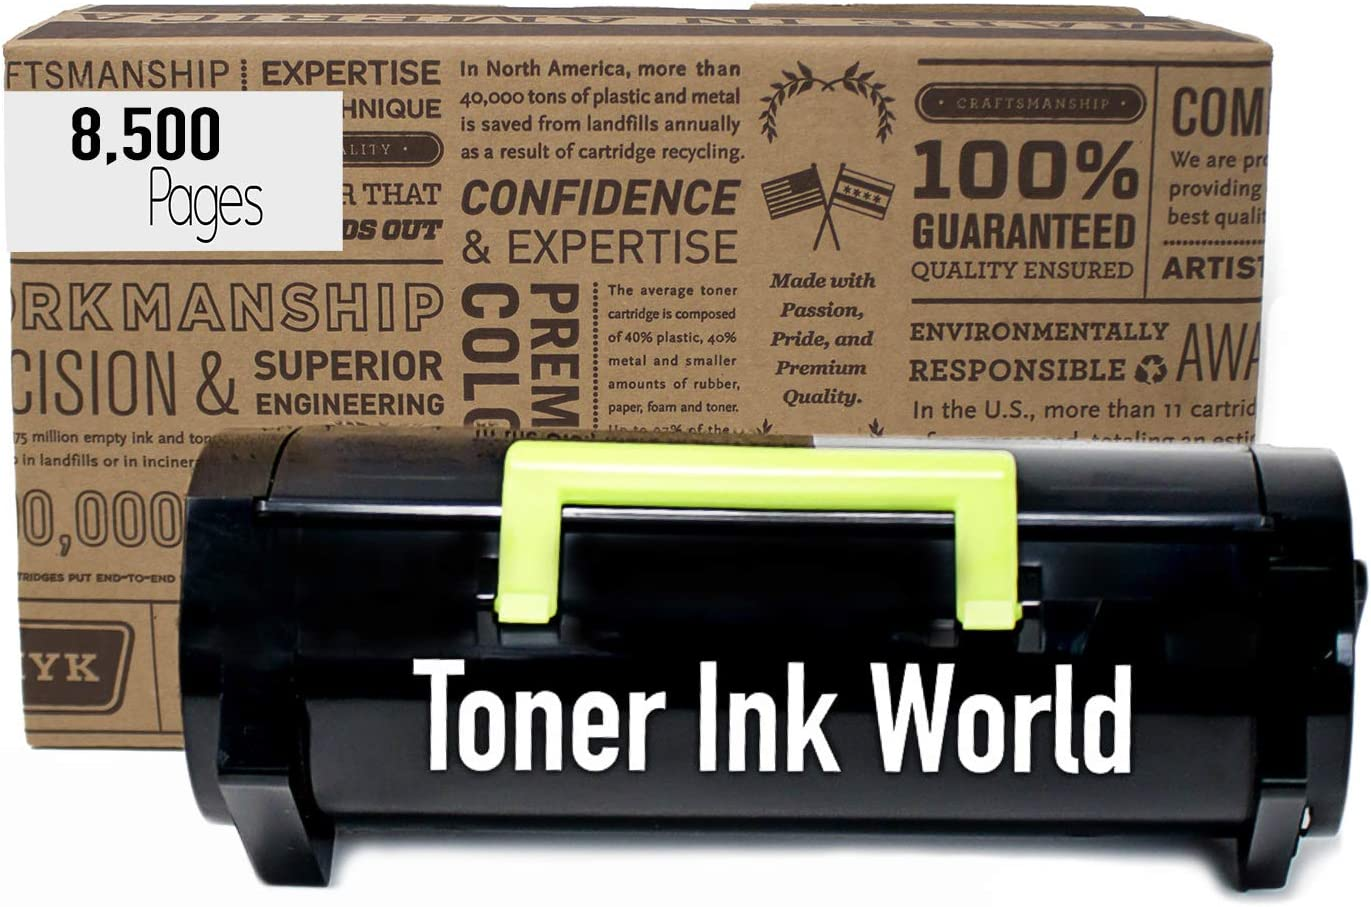 B2360dn High Yield 8,500 B3460 B3460 B2360d B3460dn Be Green Ink Dell b2360dn m11xh Toner Cartridge Compatible 331-9805 for B2360